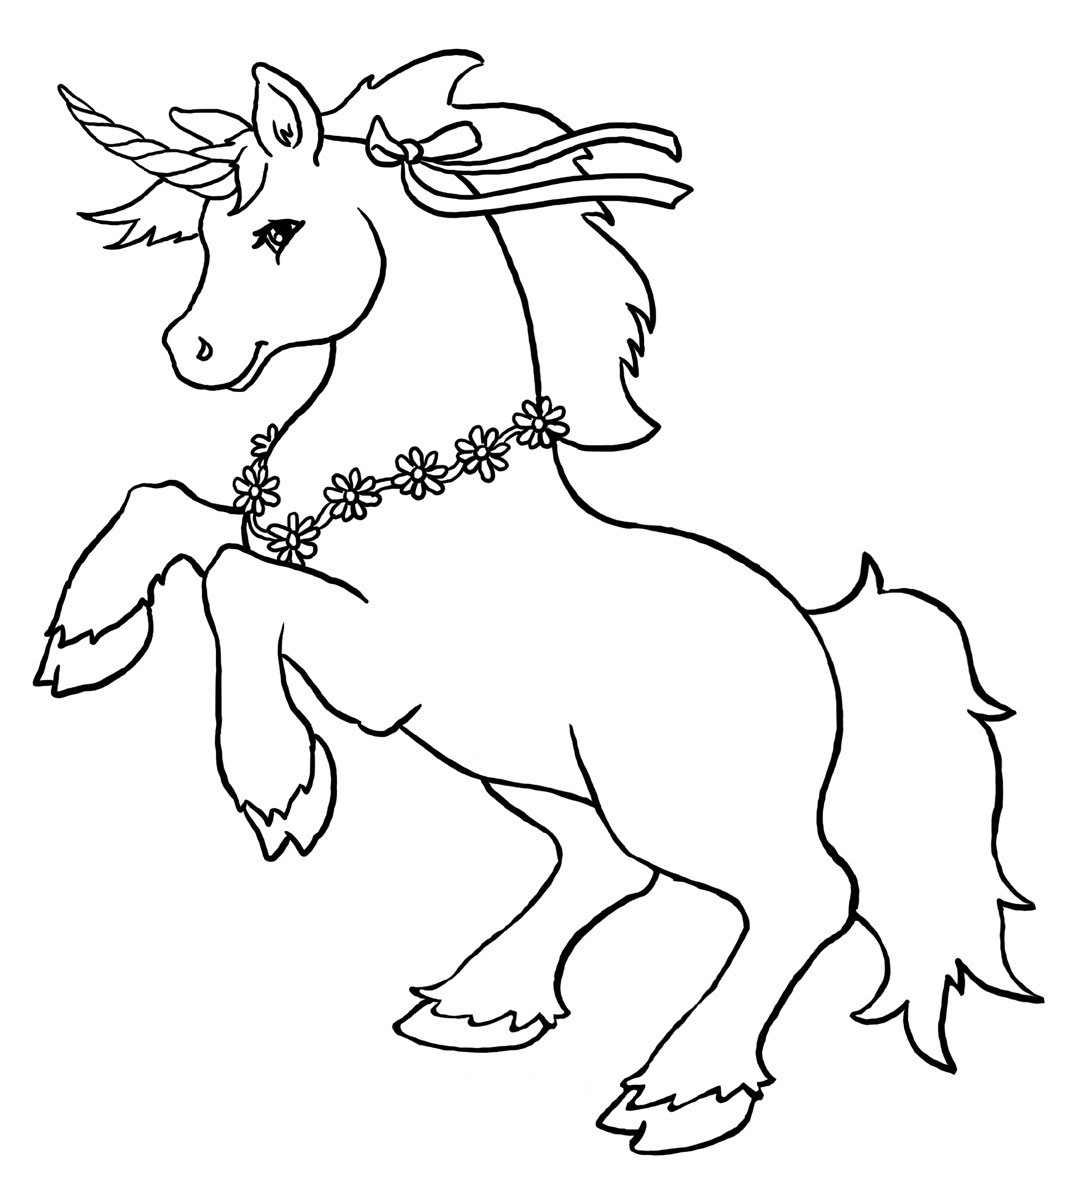 1082x1200 Fresh Cute Baby Unicorn Coloring Pages Gallery Free Coloring Book